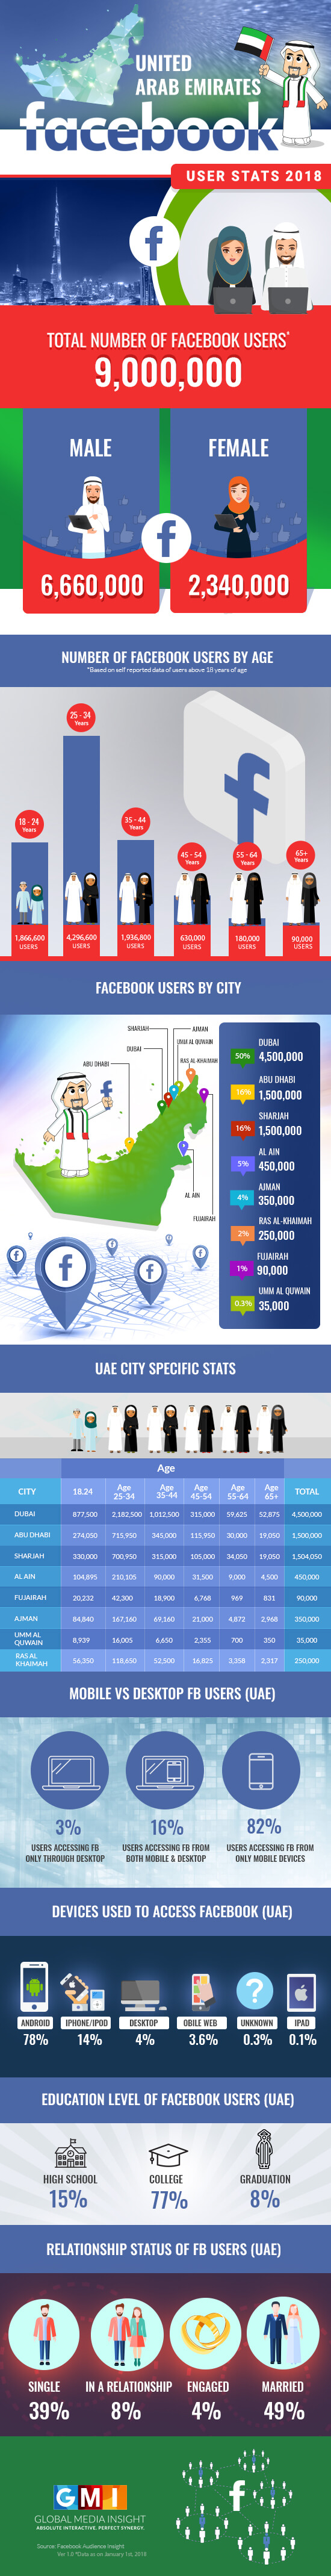 facebook statistics in uae